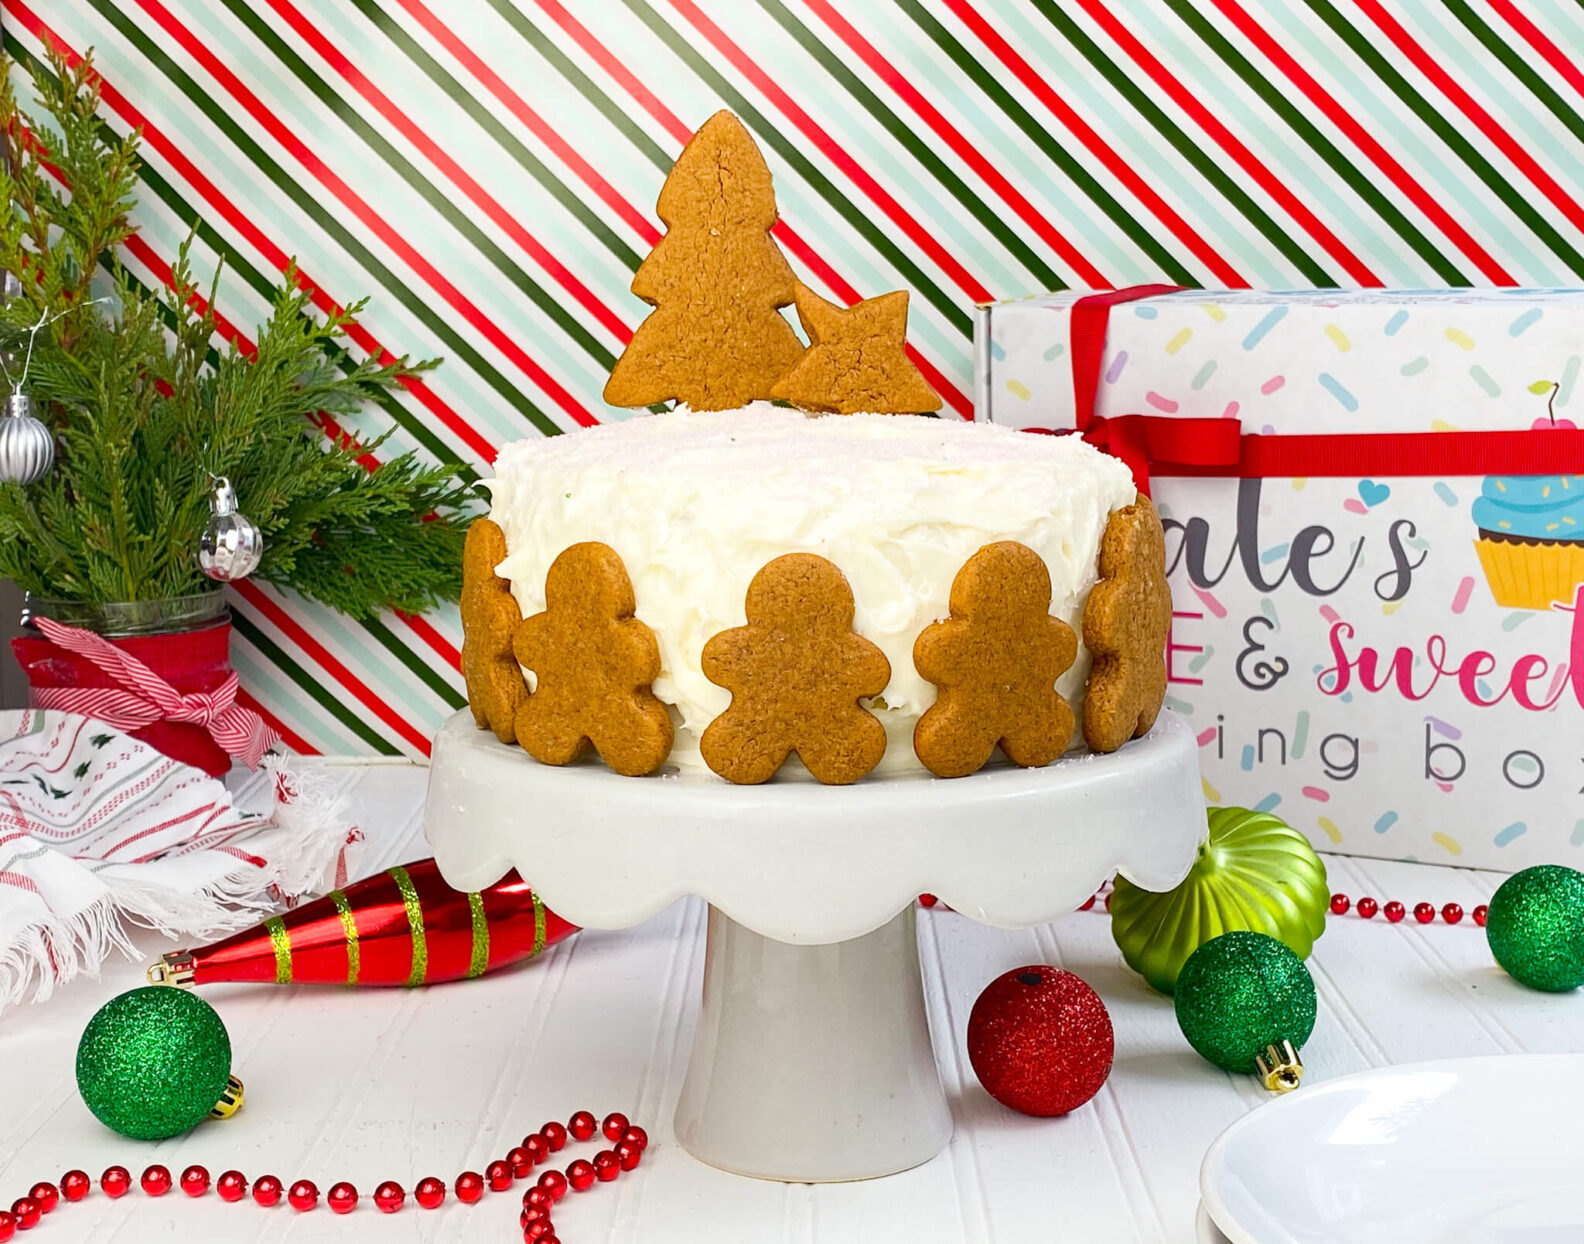 Kate's Safe and Sweet - Gingerbread Cake with Cookies